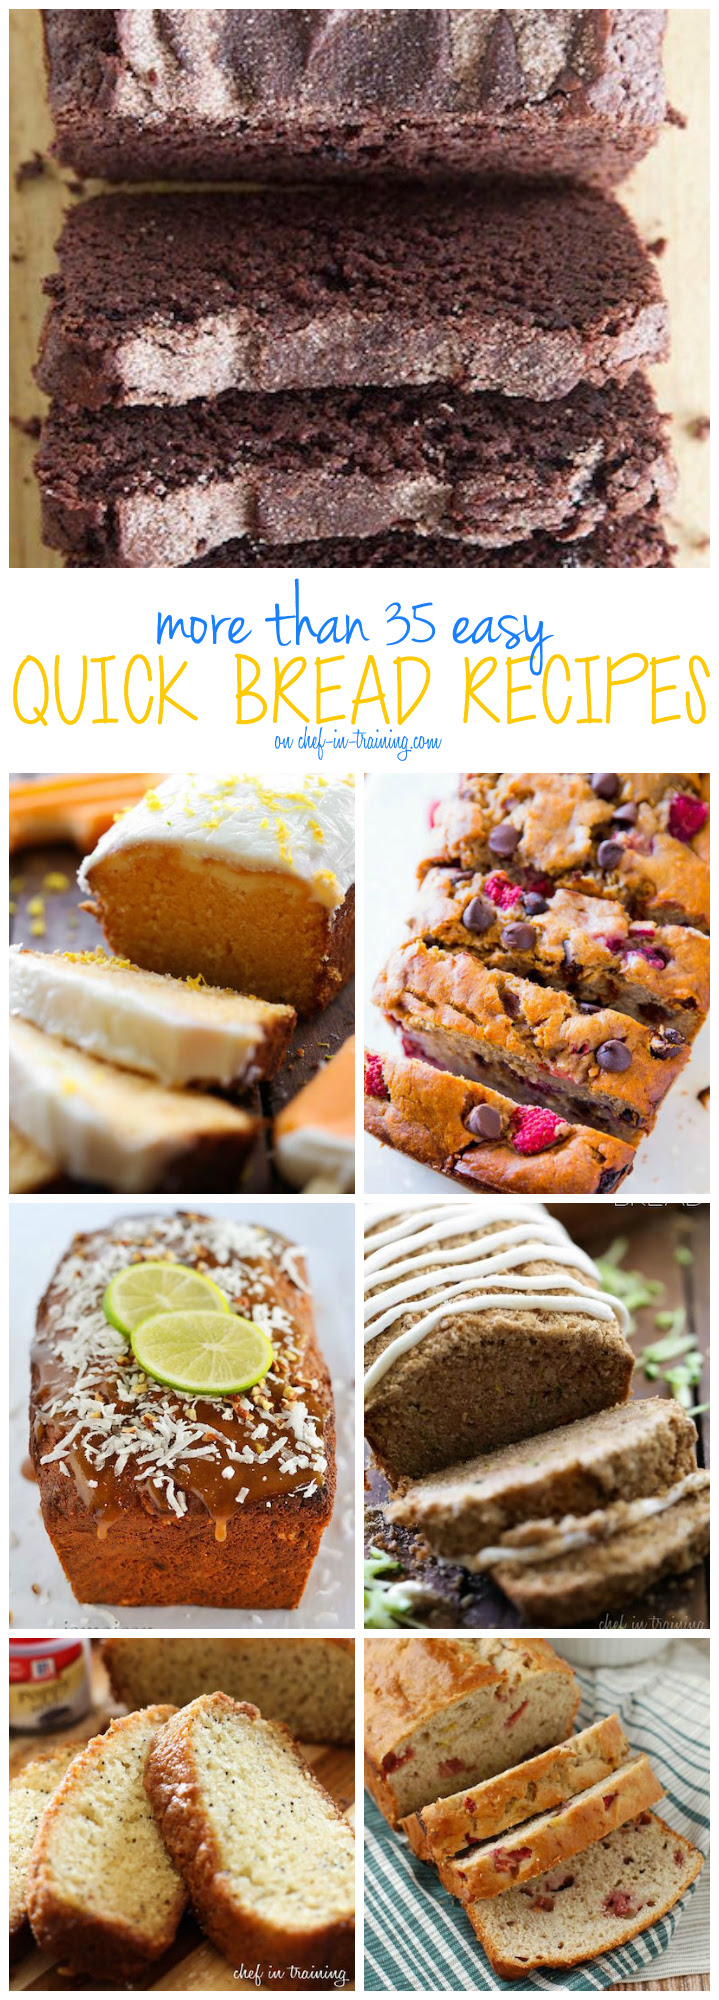 More Than 35 EASY Quick Bread Recipes - Chef in Training